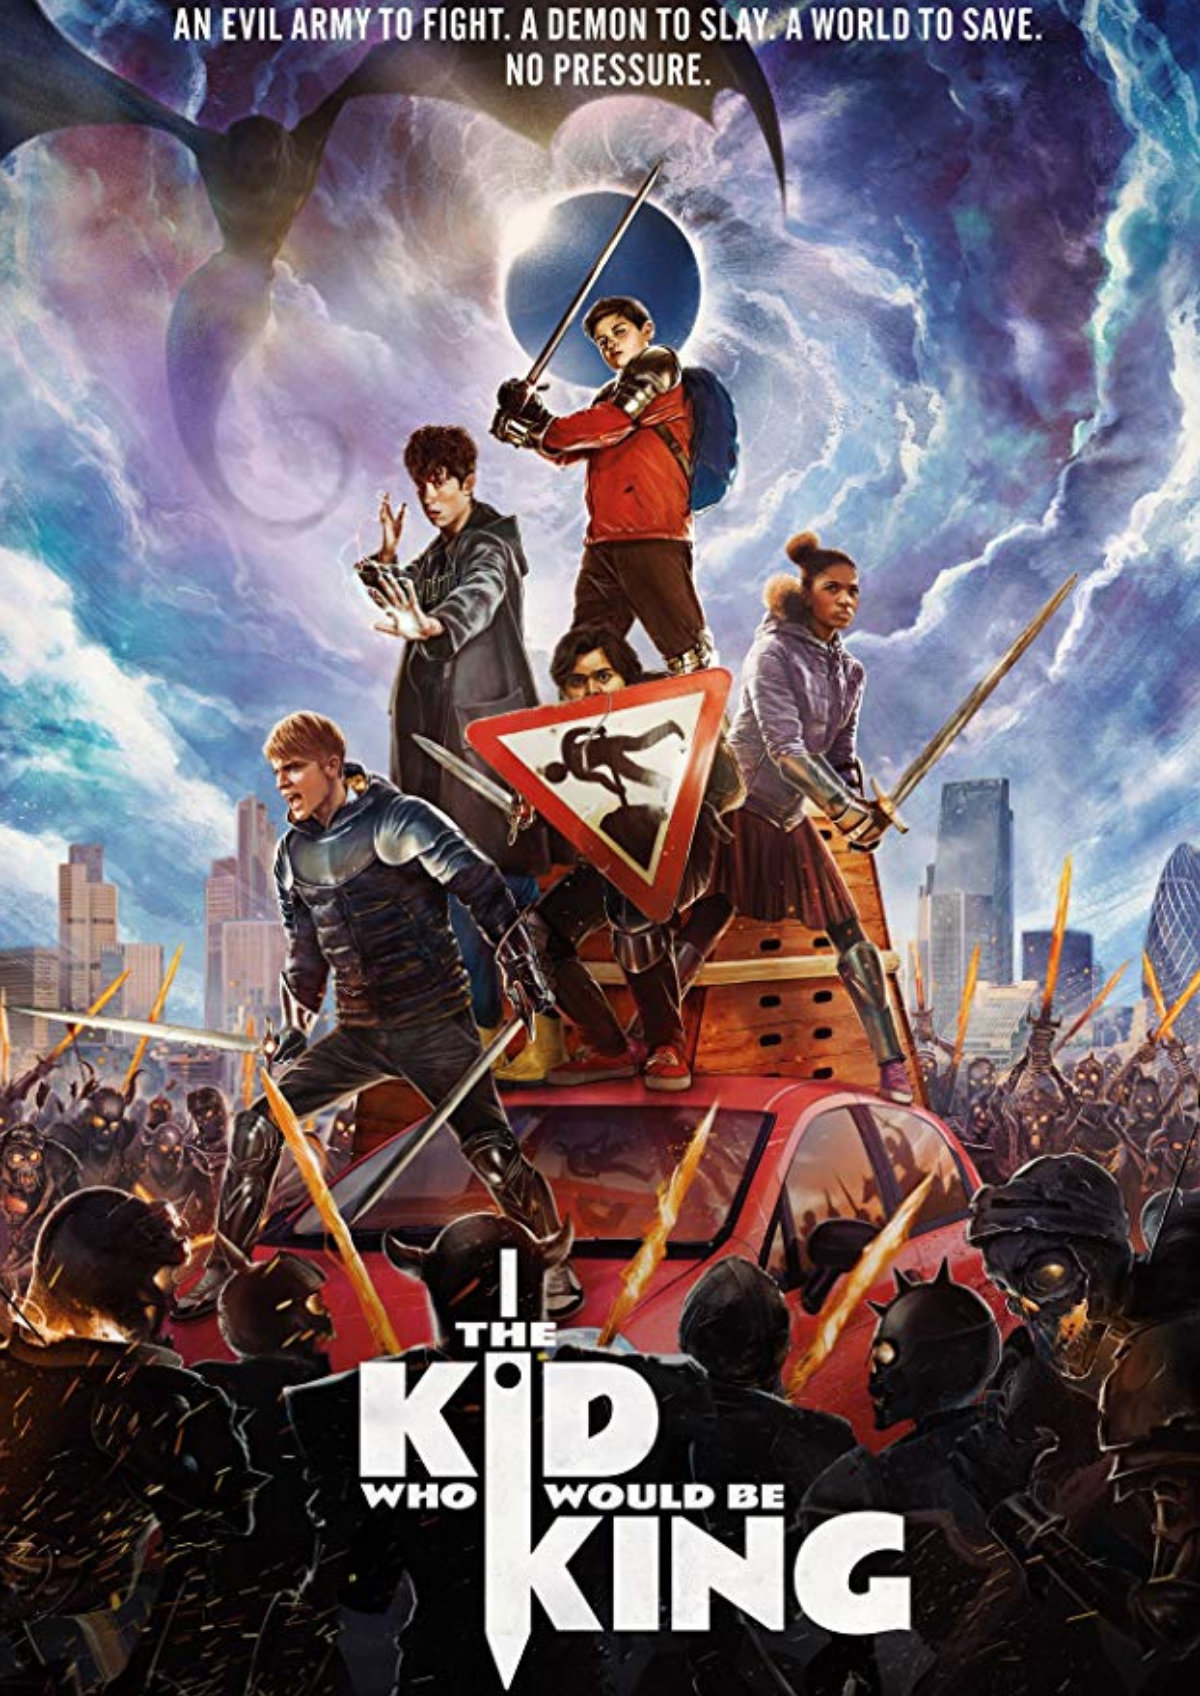 'The Kid Who Would Be King' movie poster